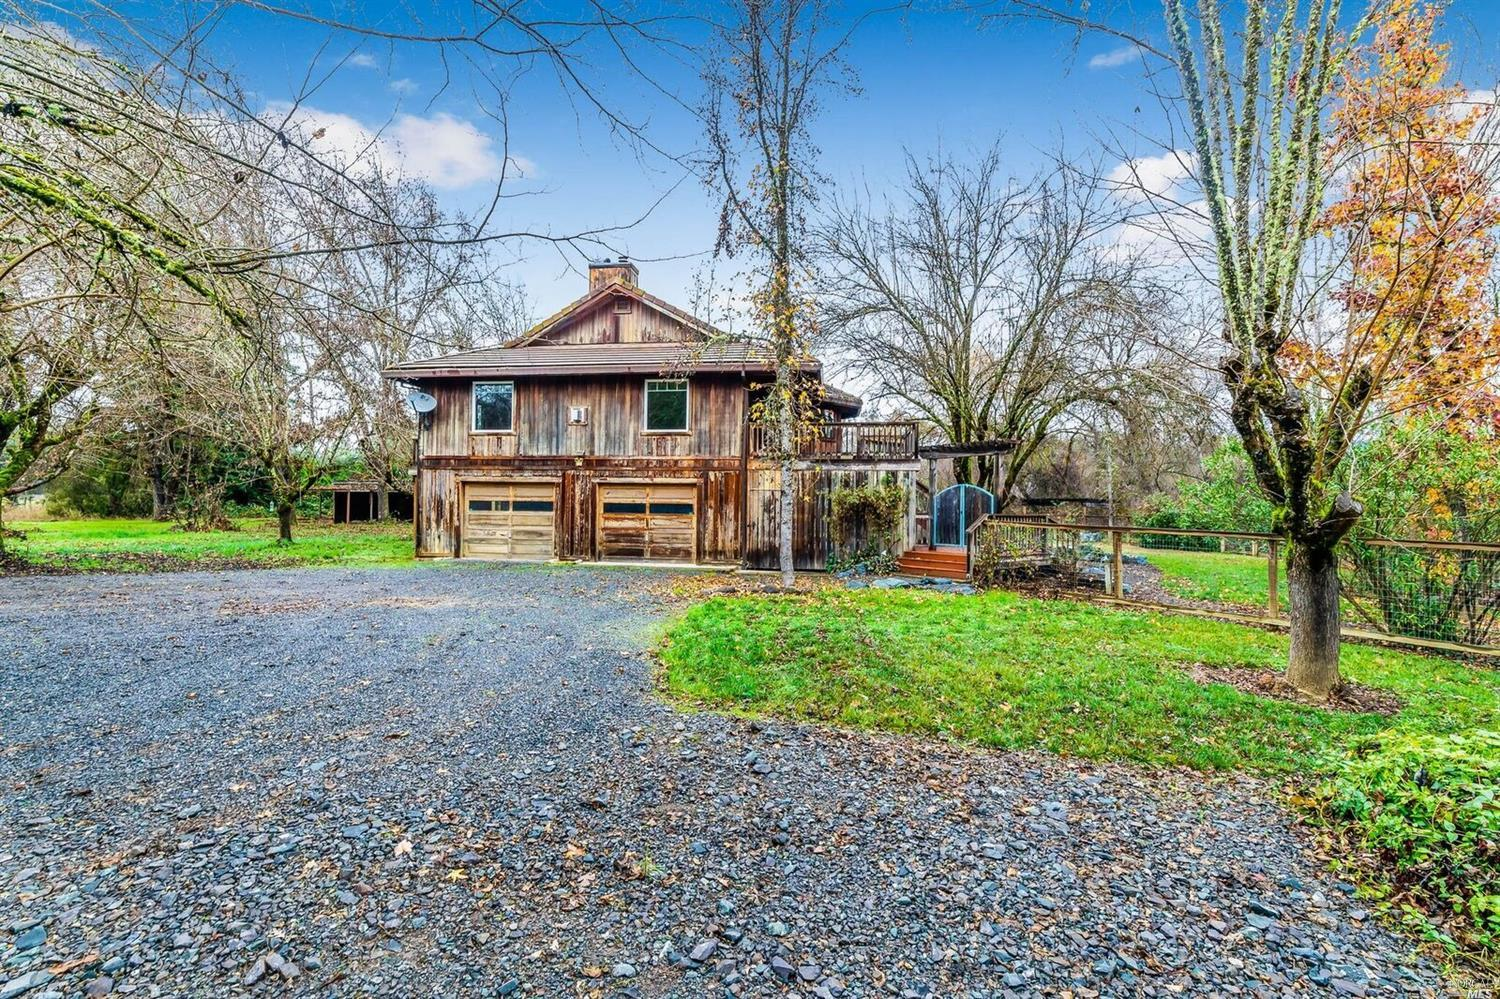 8251 W Side Potter Valley Road, Potter Valley, CA 95469